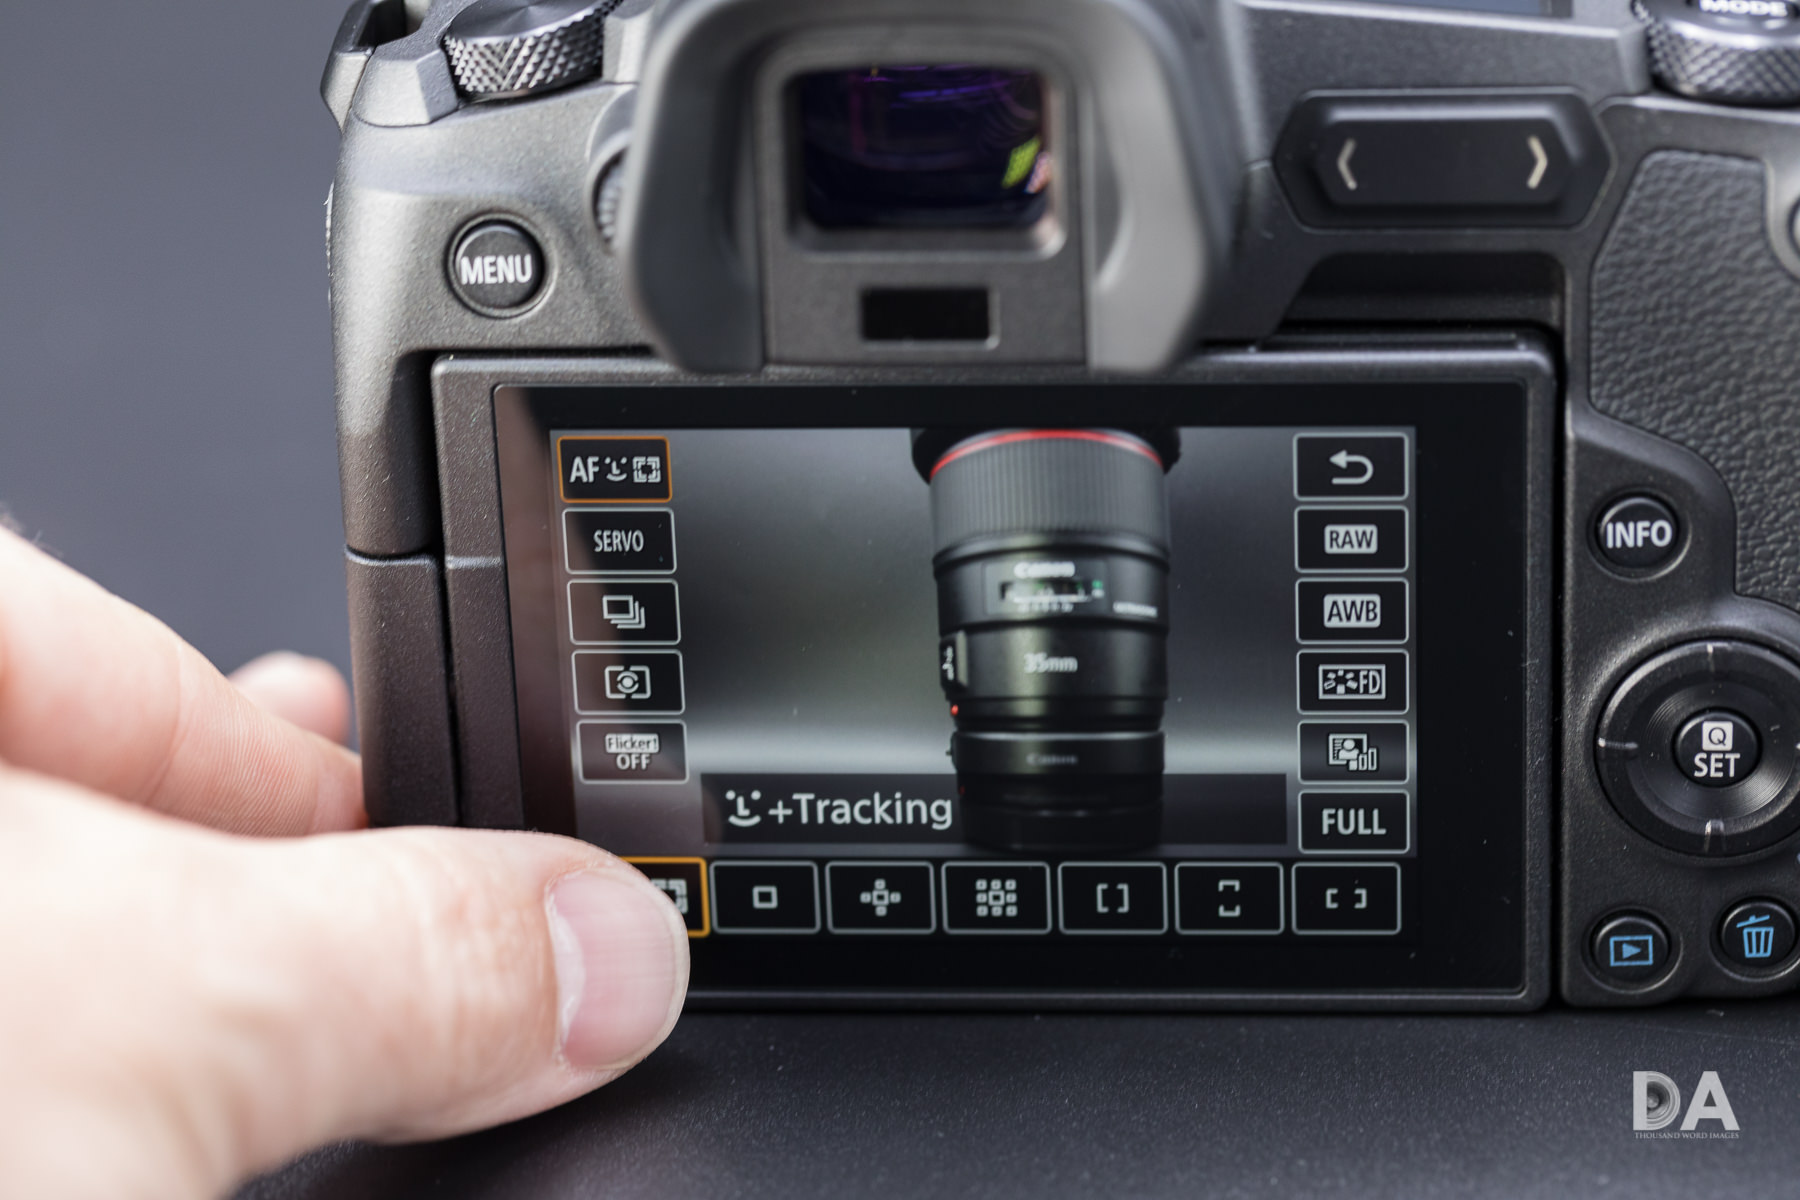 19 Viewfinder and LCD